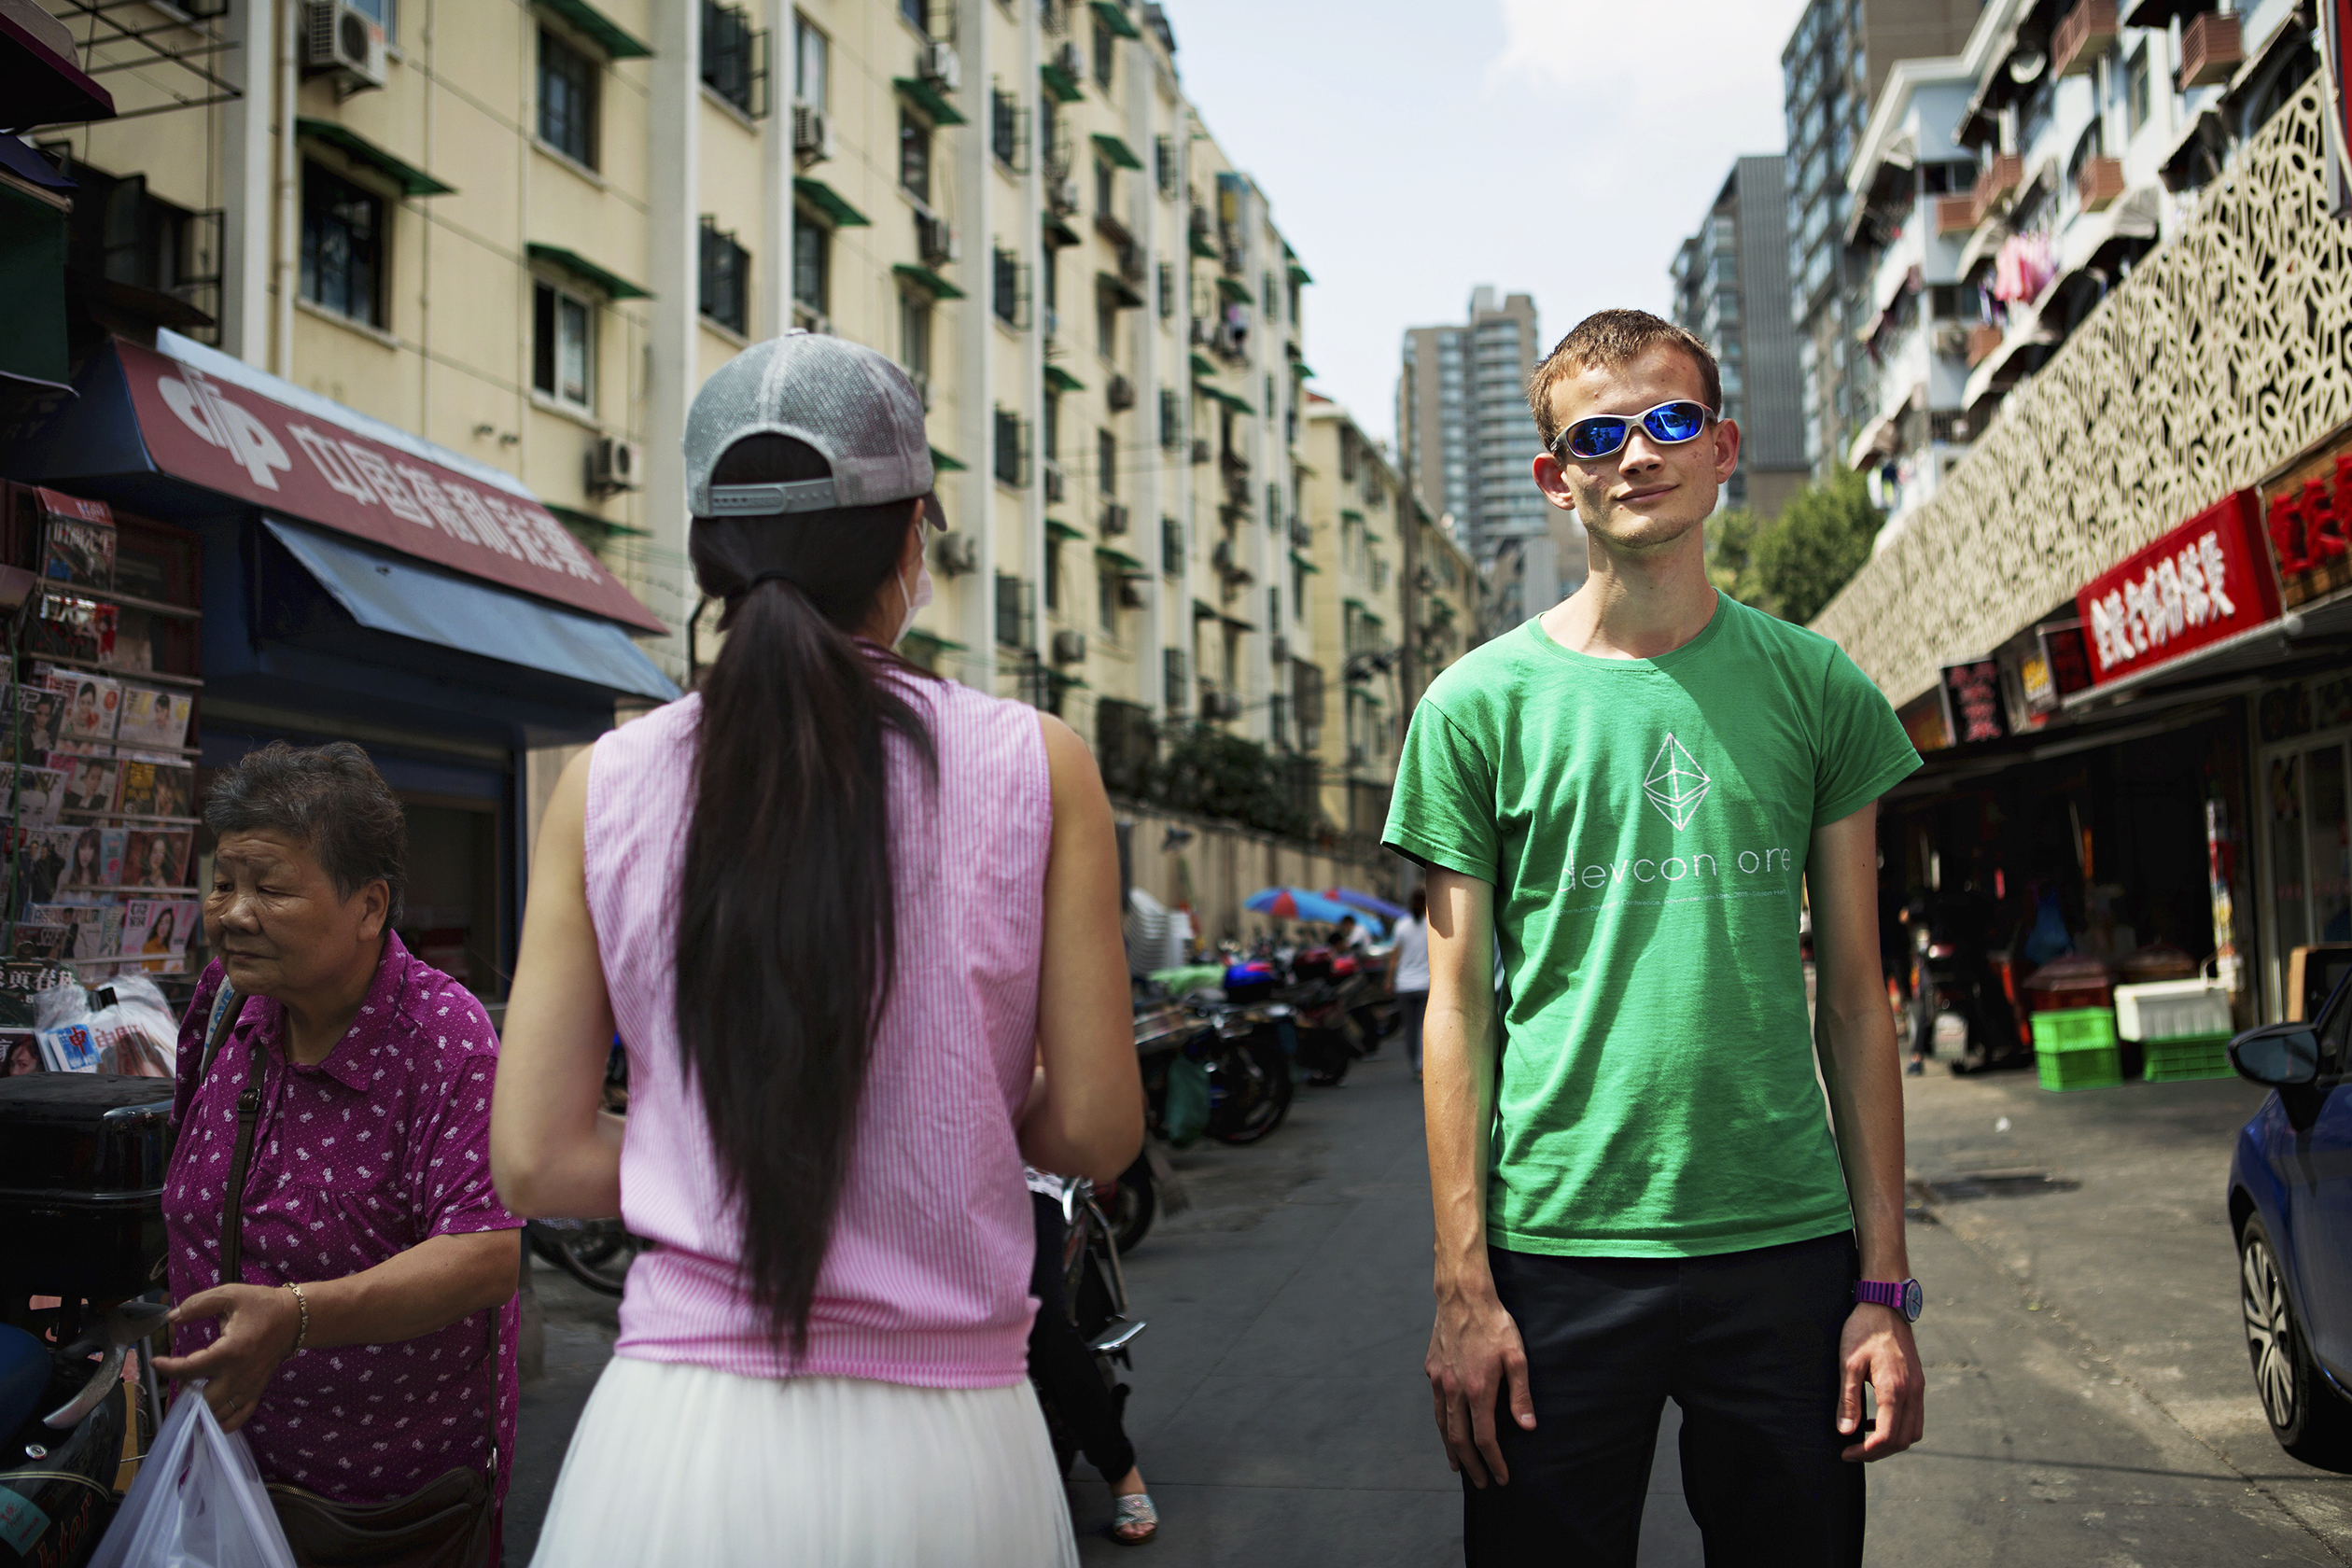 BRIGHT FUTURE: Buterin on a street in Shanghai on Sept. 13, days before he hosted an Ethereum conference.